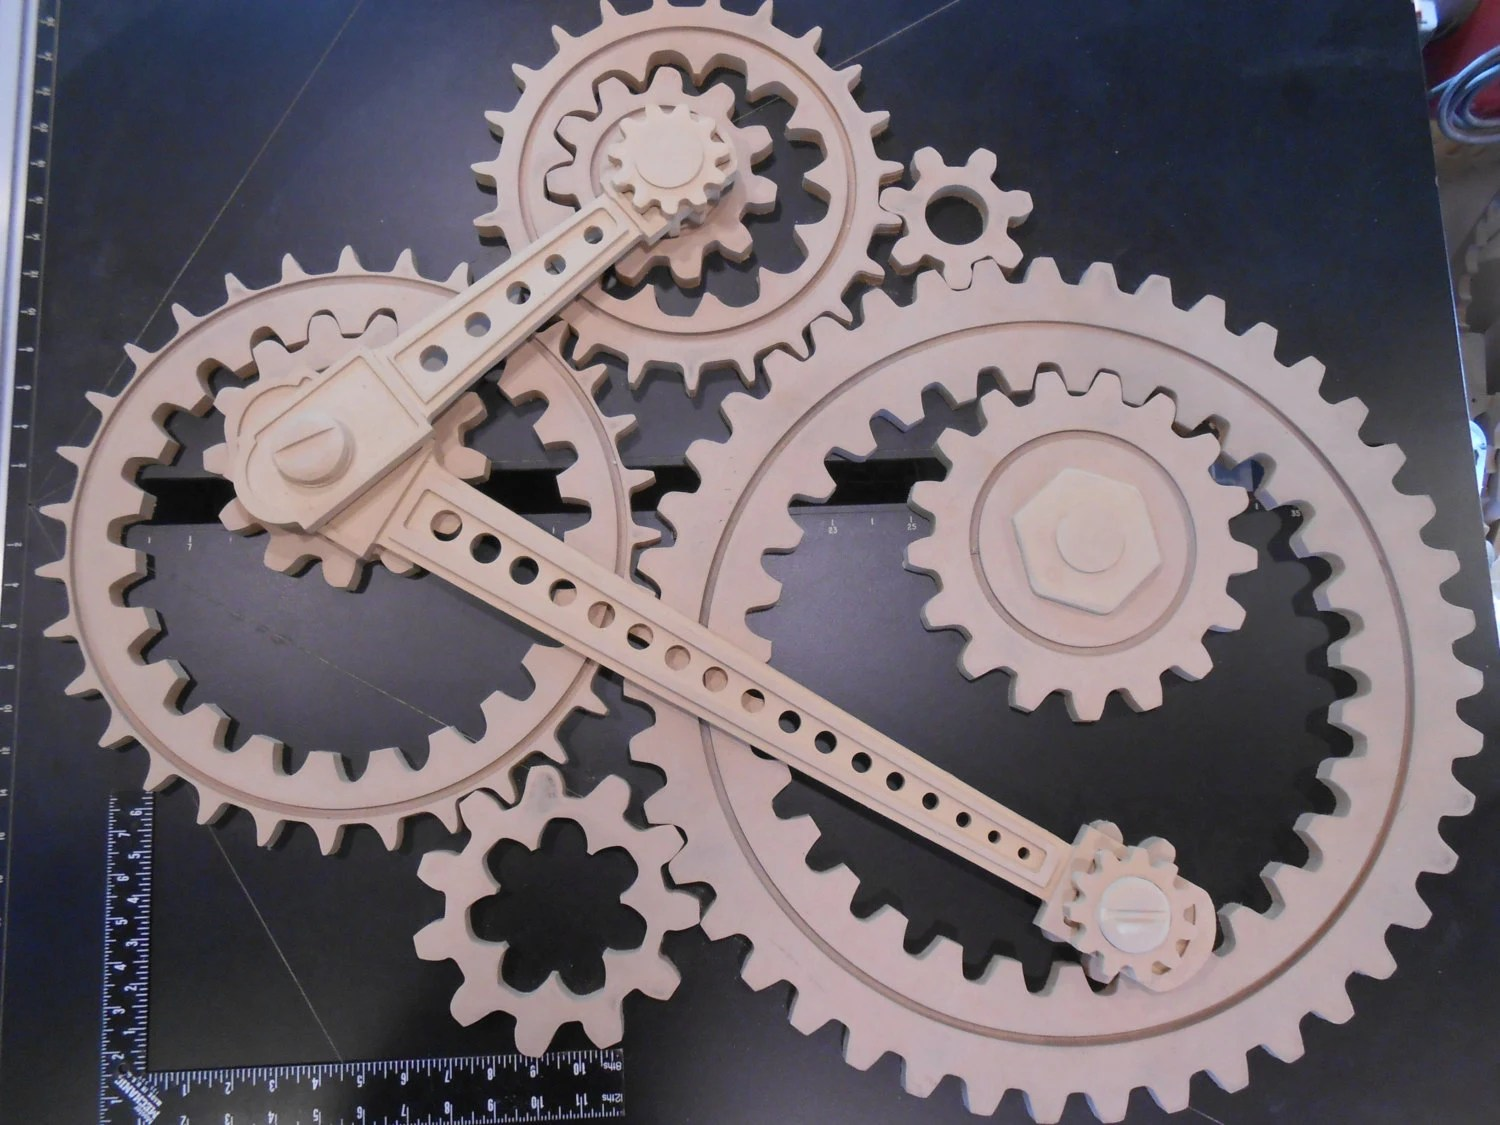 wooden gear sculpture in